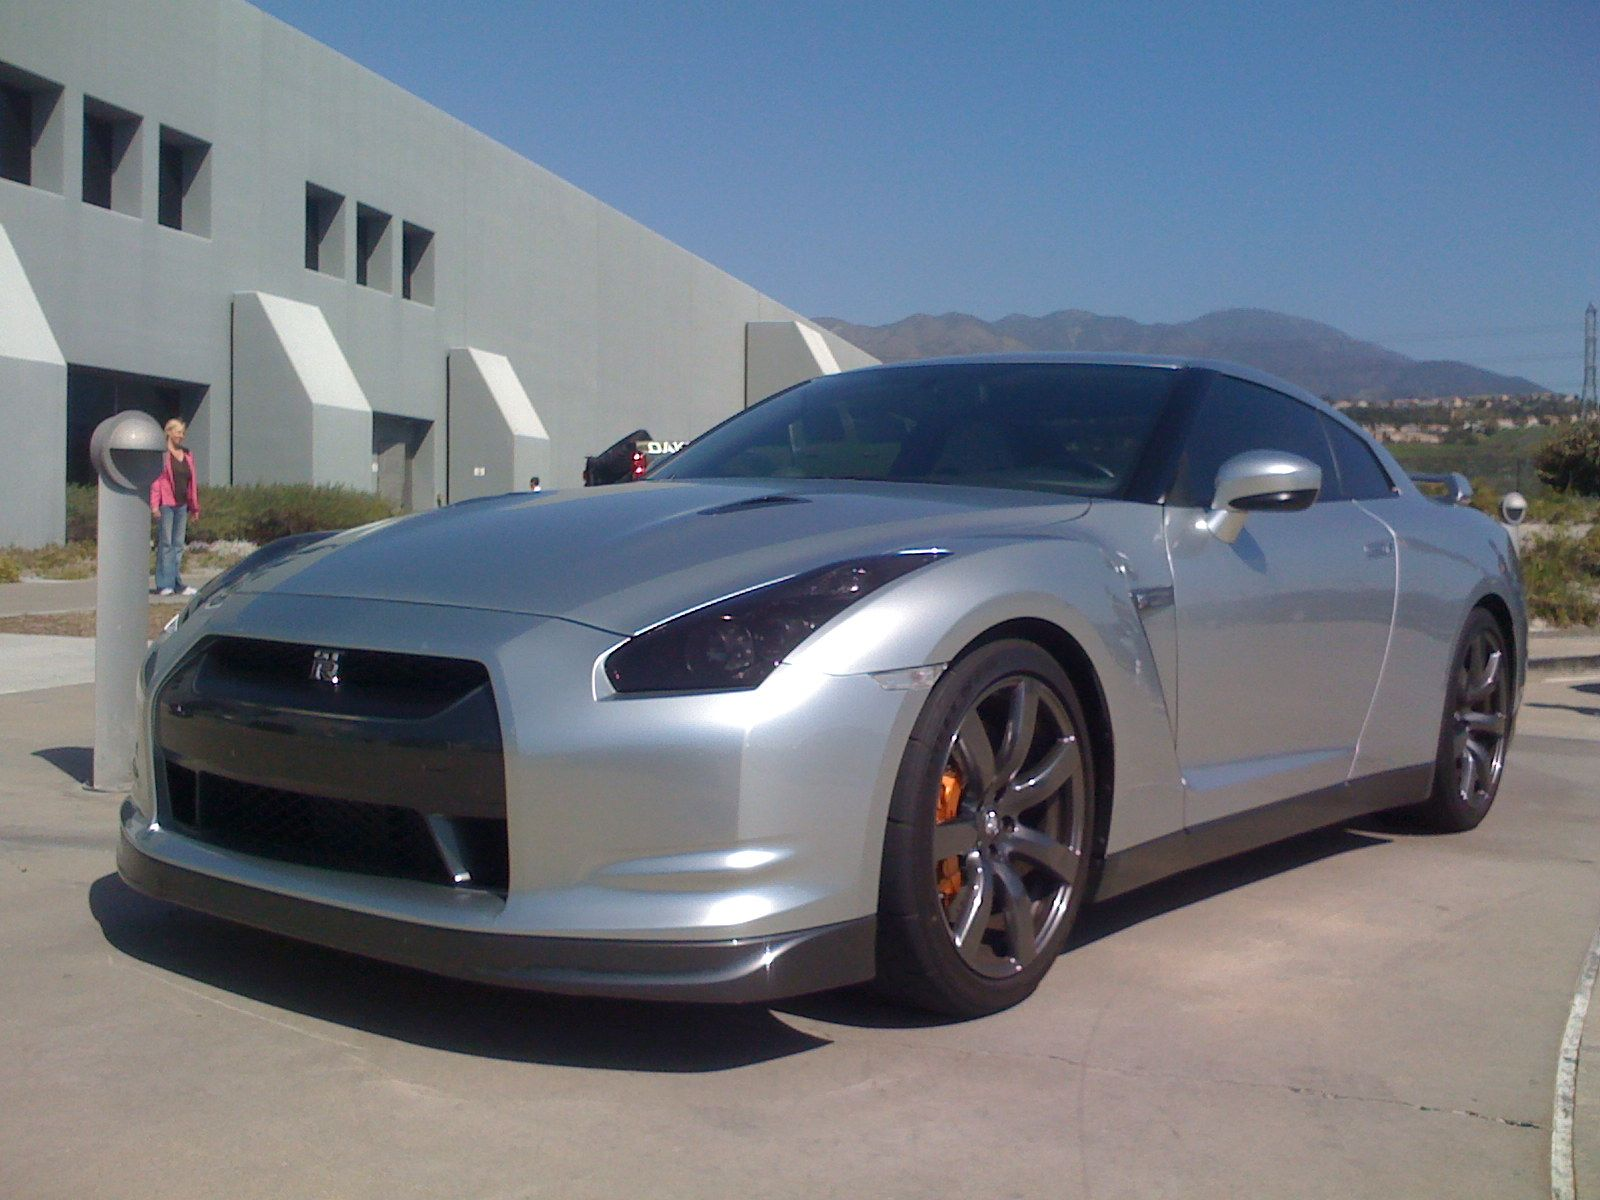 More photos of the GT-R in front of our building